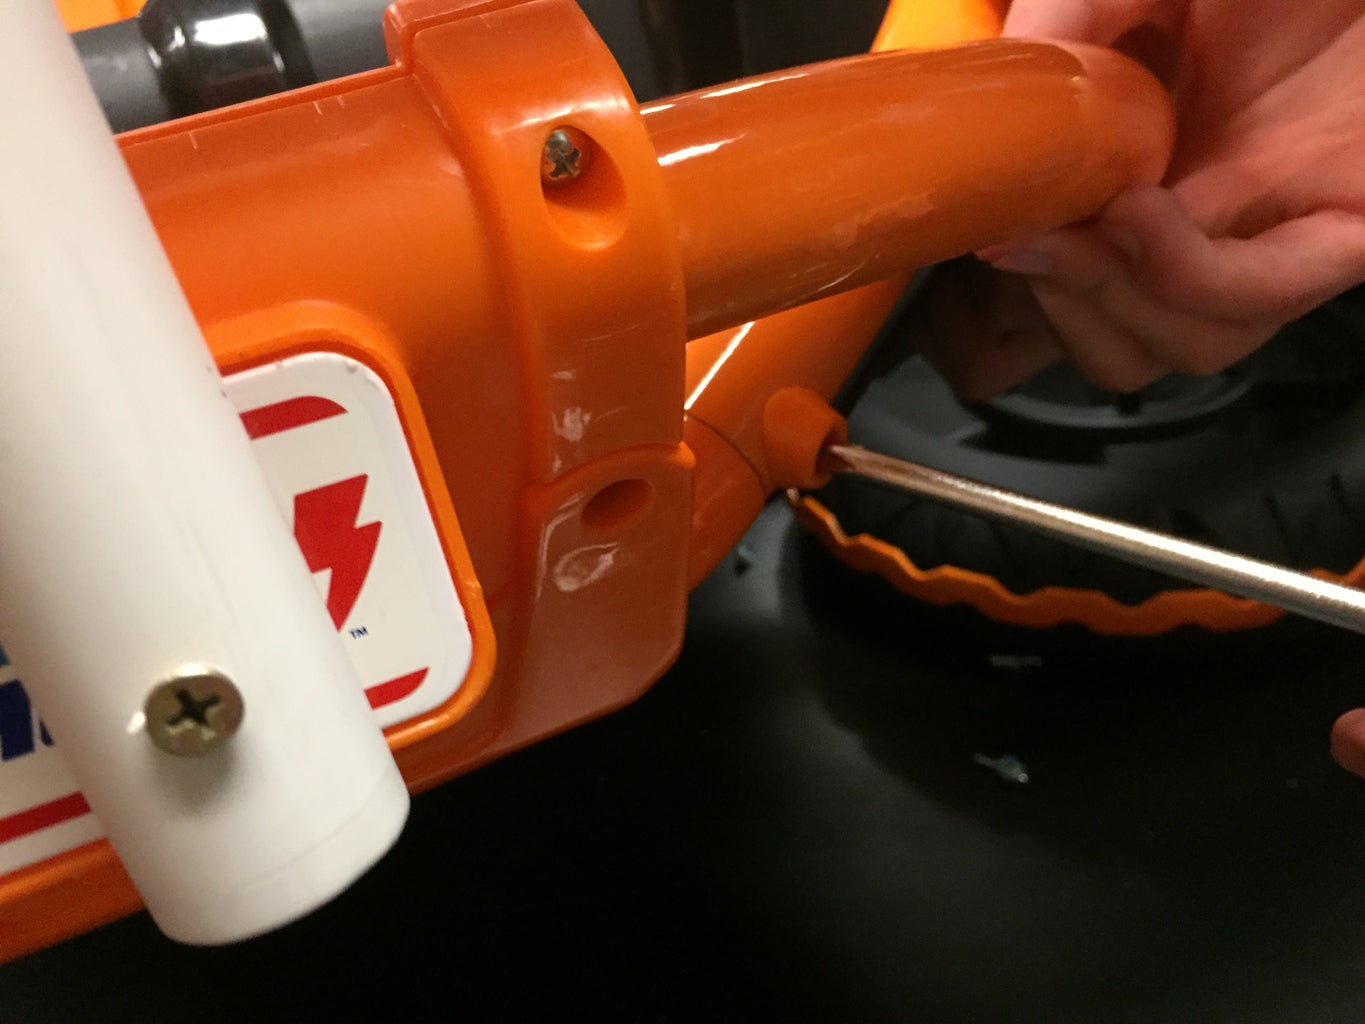 Removing the Two Joysticks (This Must Be Completed First If Wanting a Single Joystick)